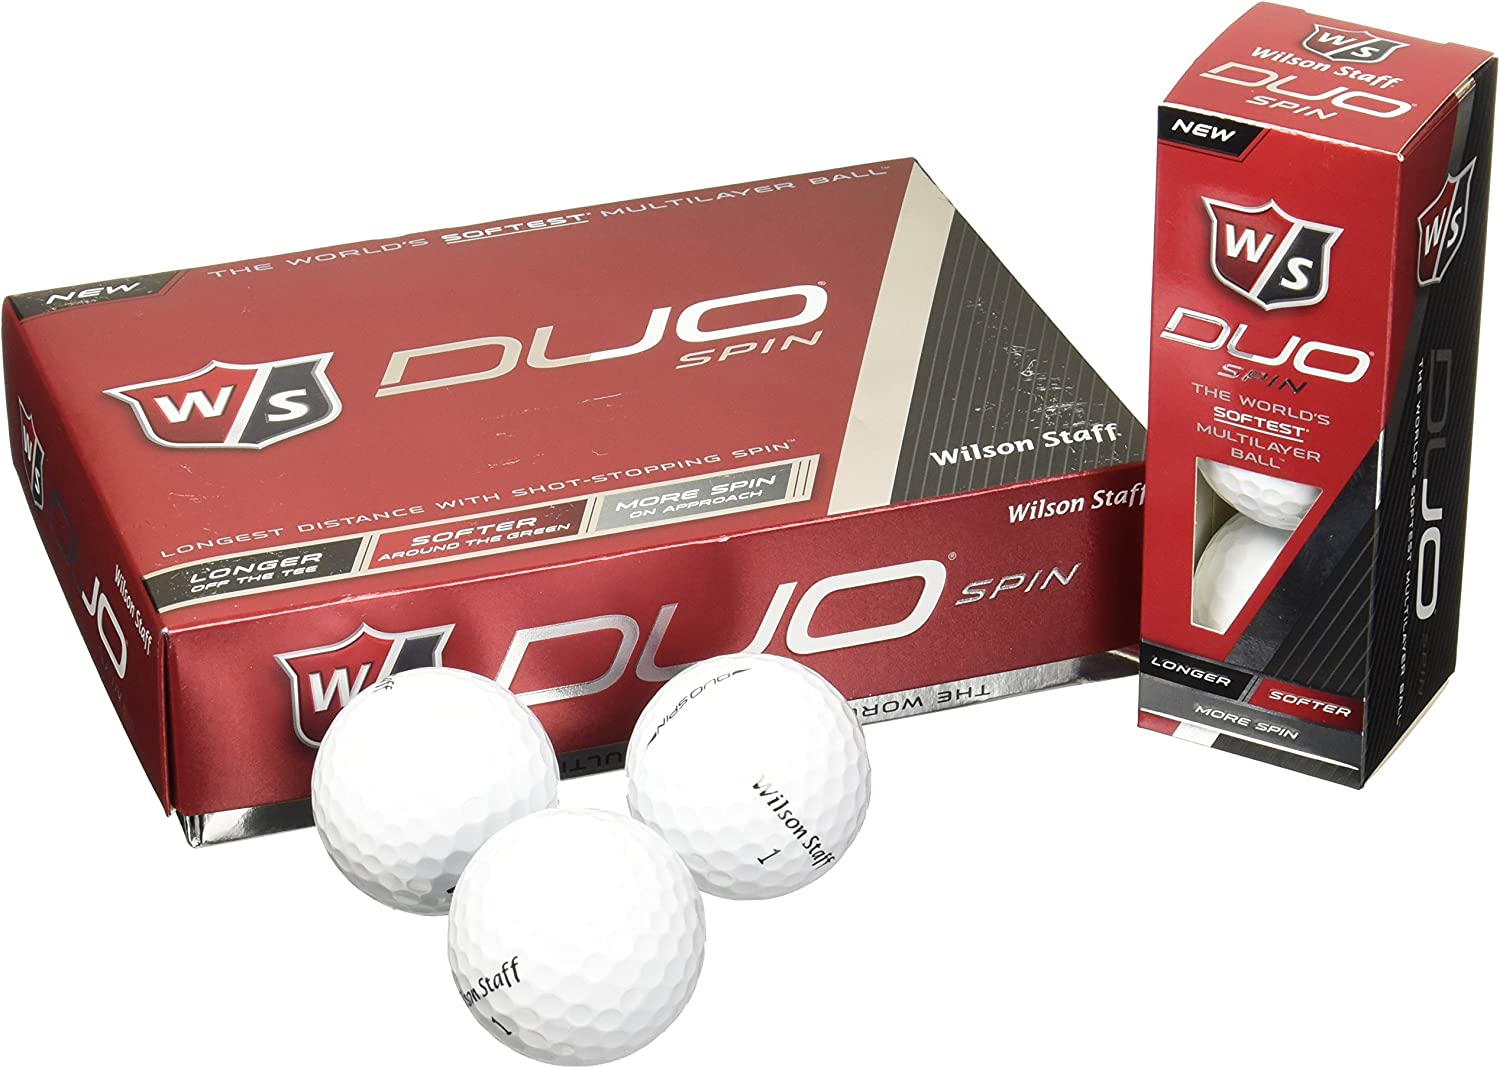 Wilson Staff Duo Spin Golf Balls (12-Pack), White